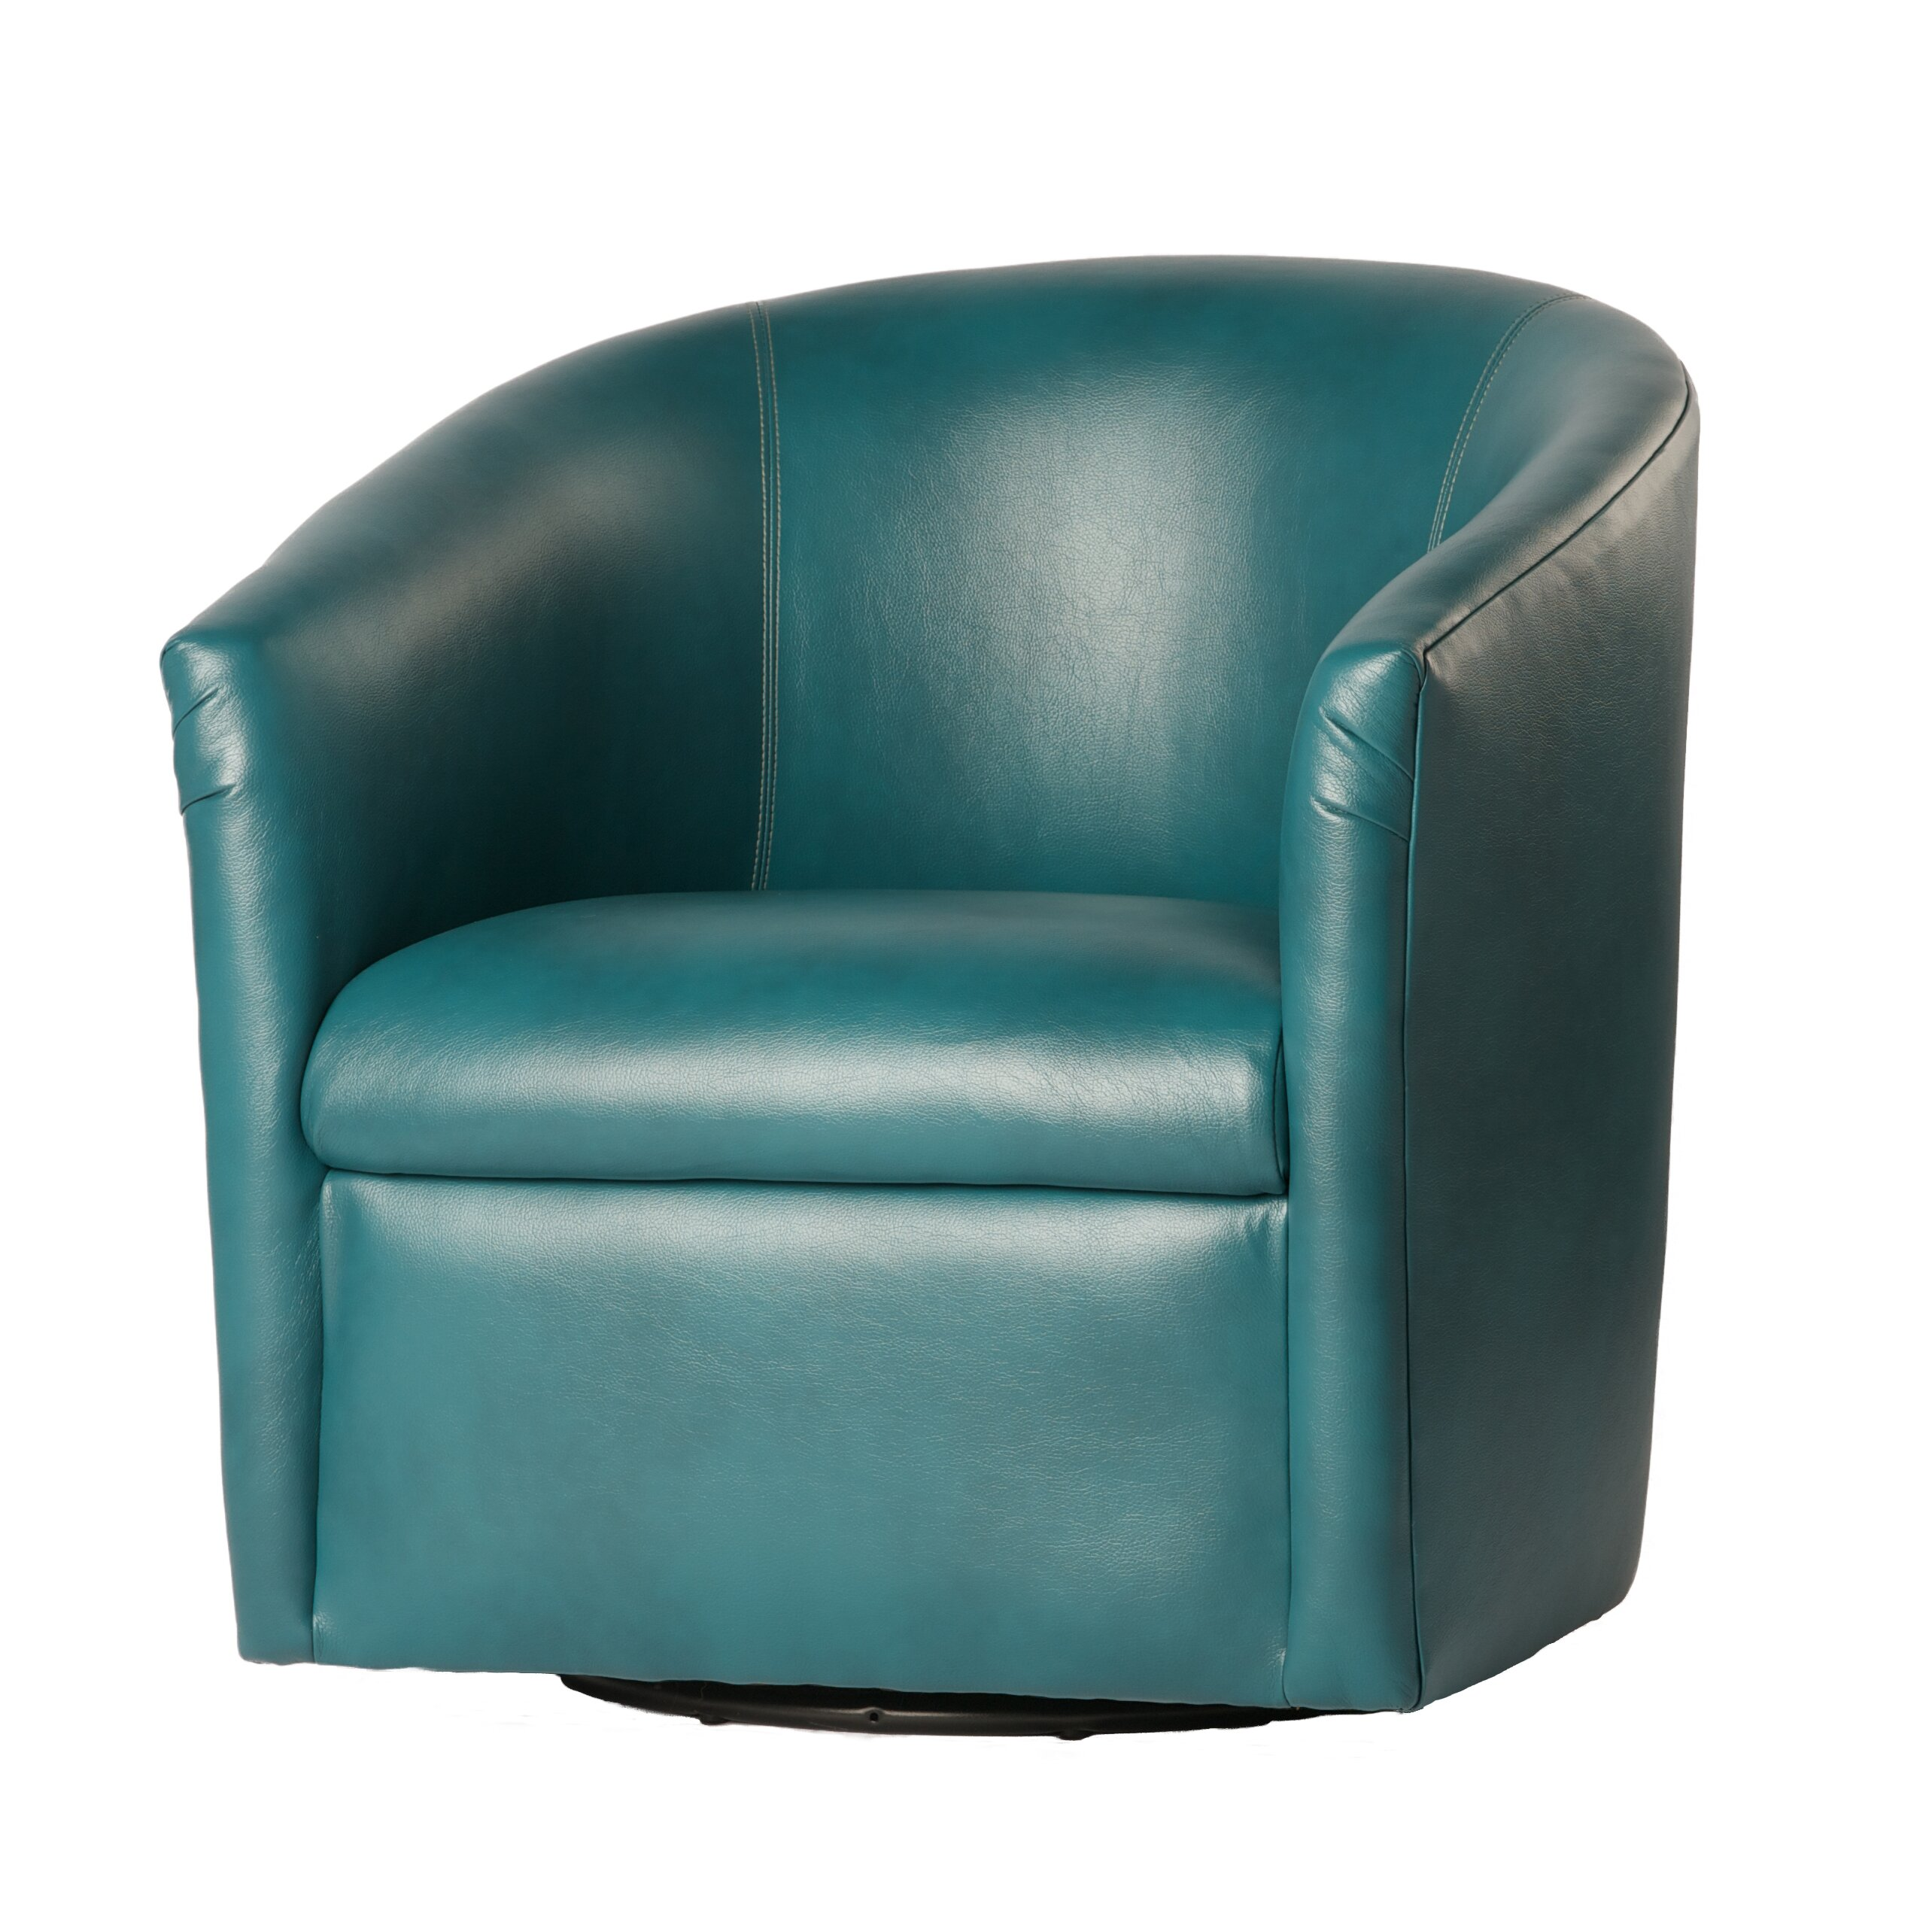 Swivel Living Room Chairs Contemporary Swivel Chairs Youll Love Wayfair